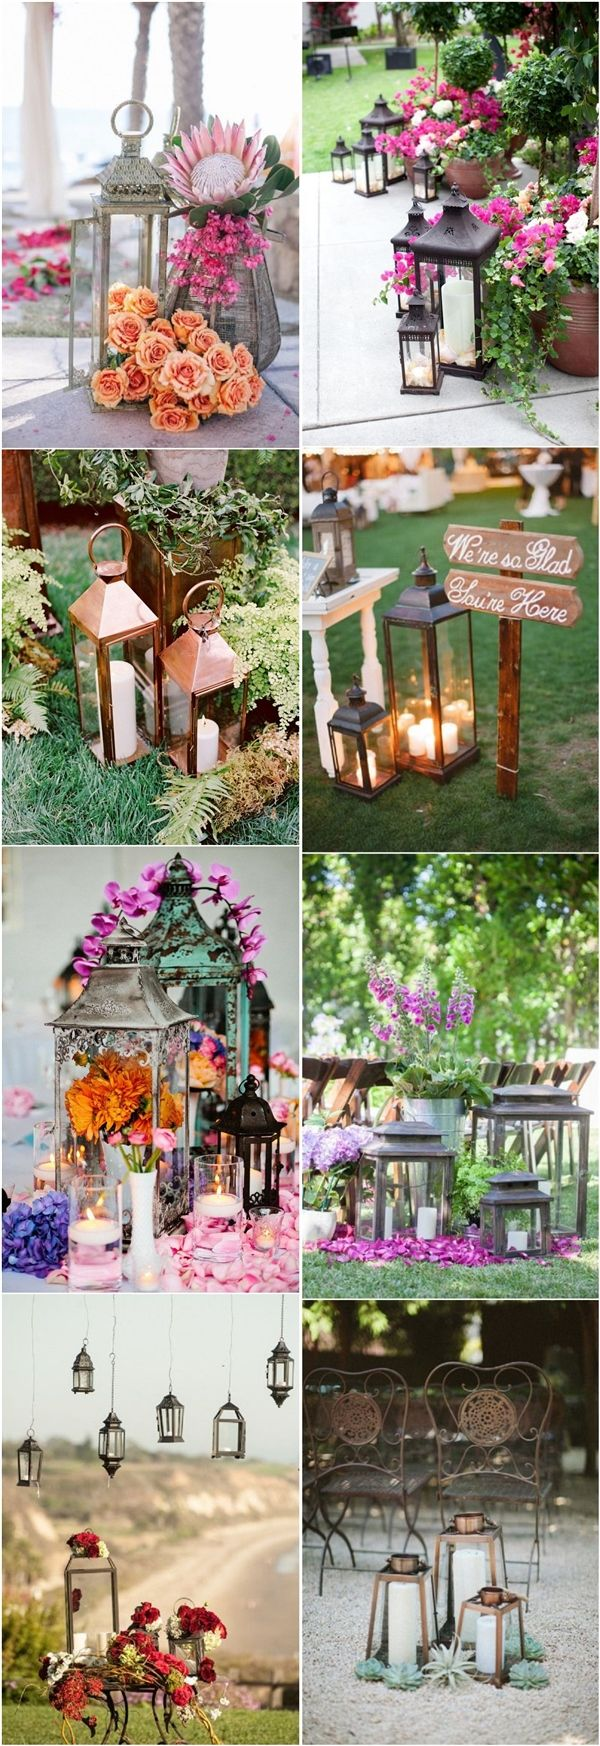 35 rustic lantern wedding decor ideas decorao para casamento 35 rustic lantern wedding decor ideas junglespirit Gallery